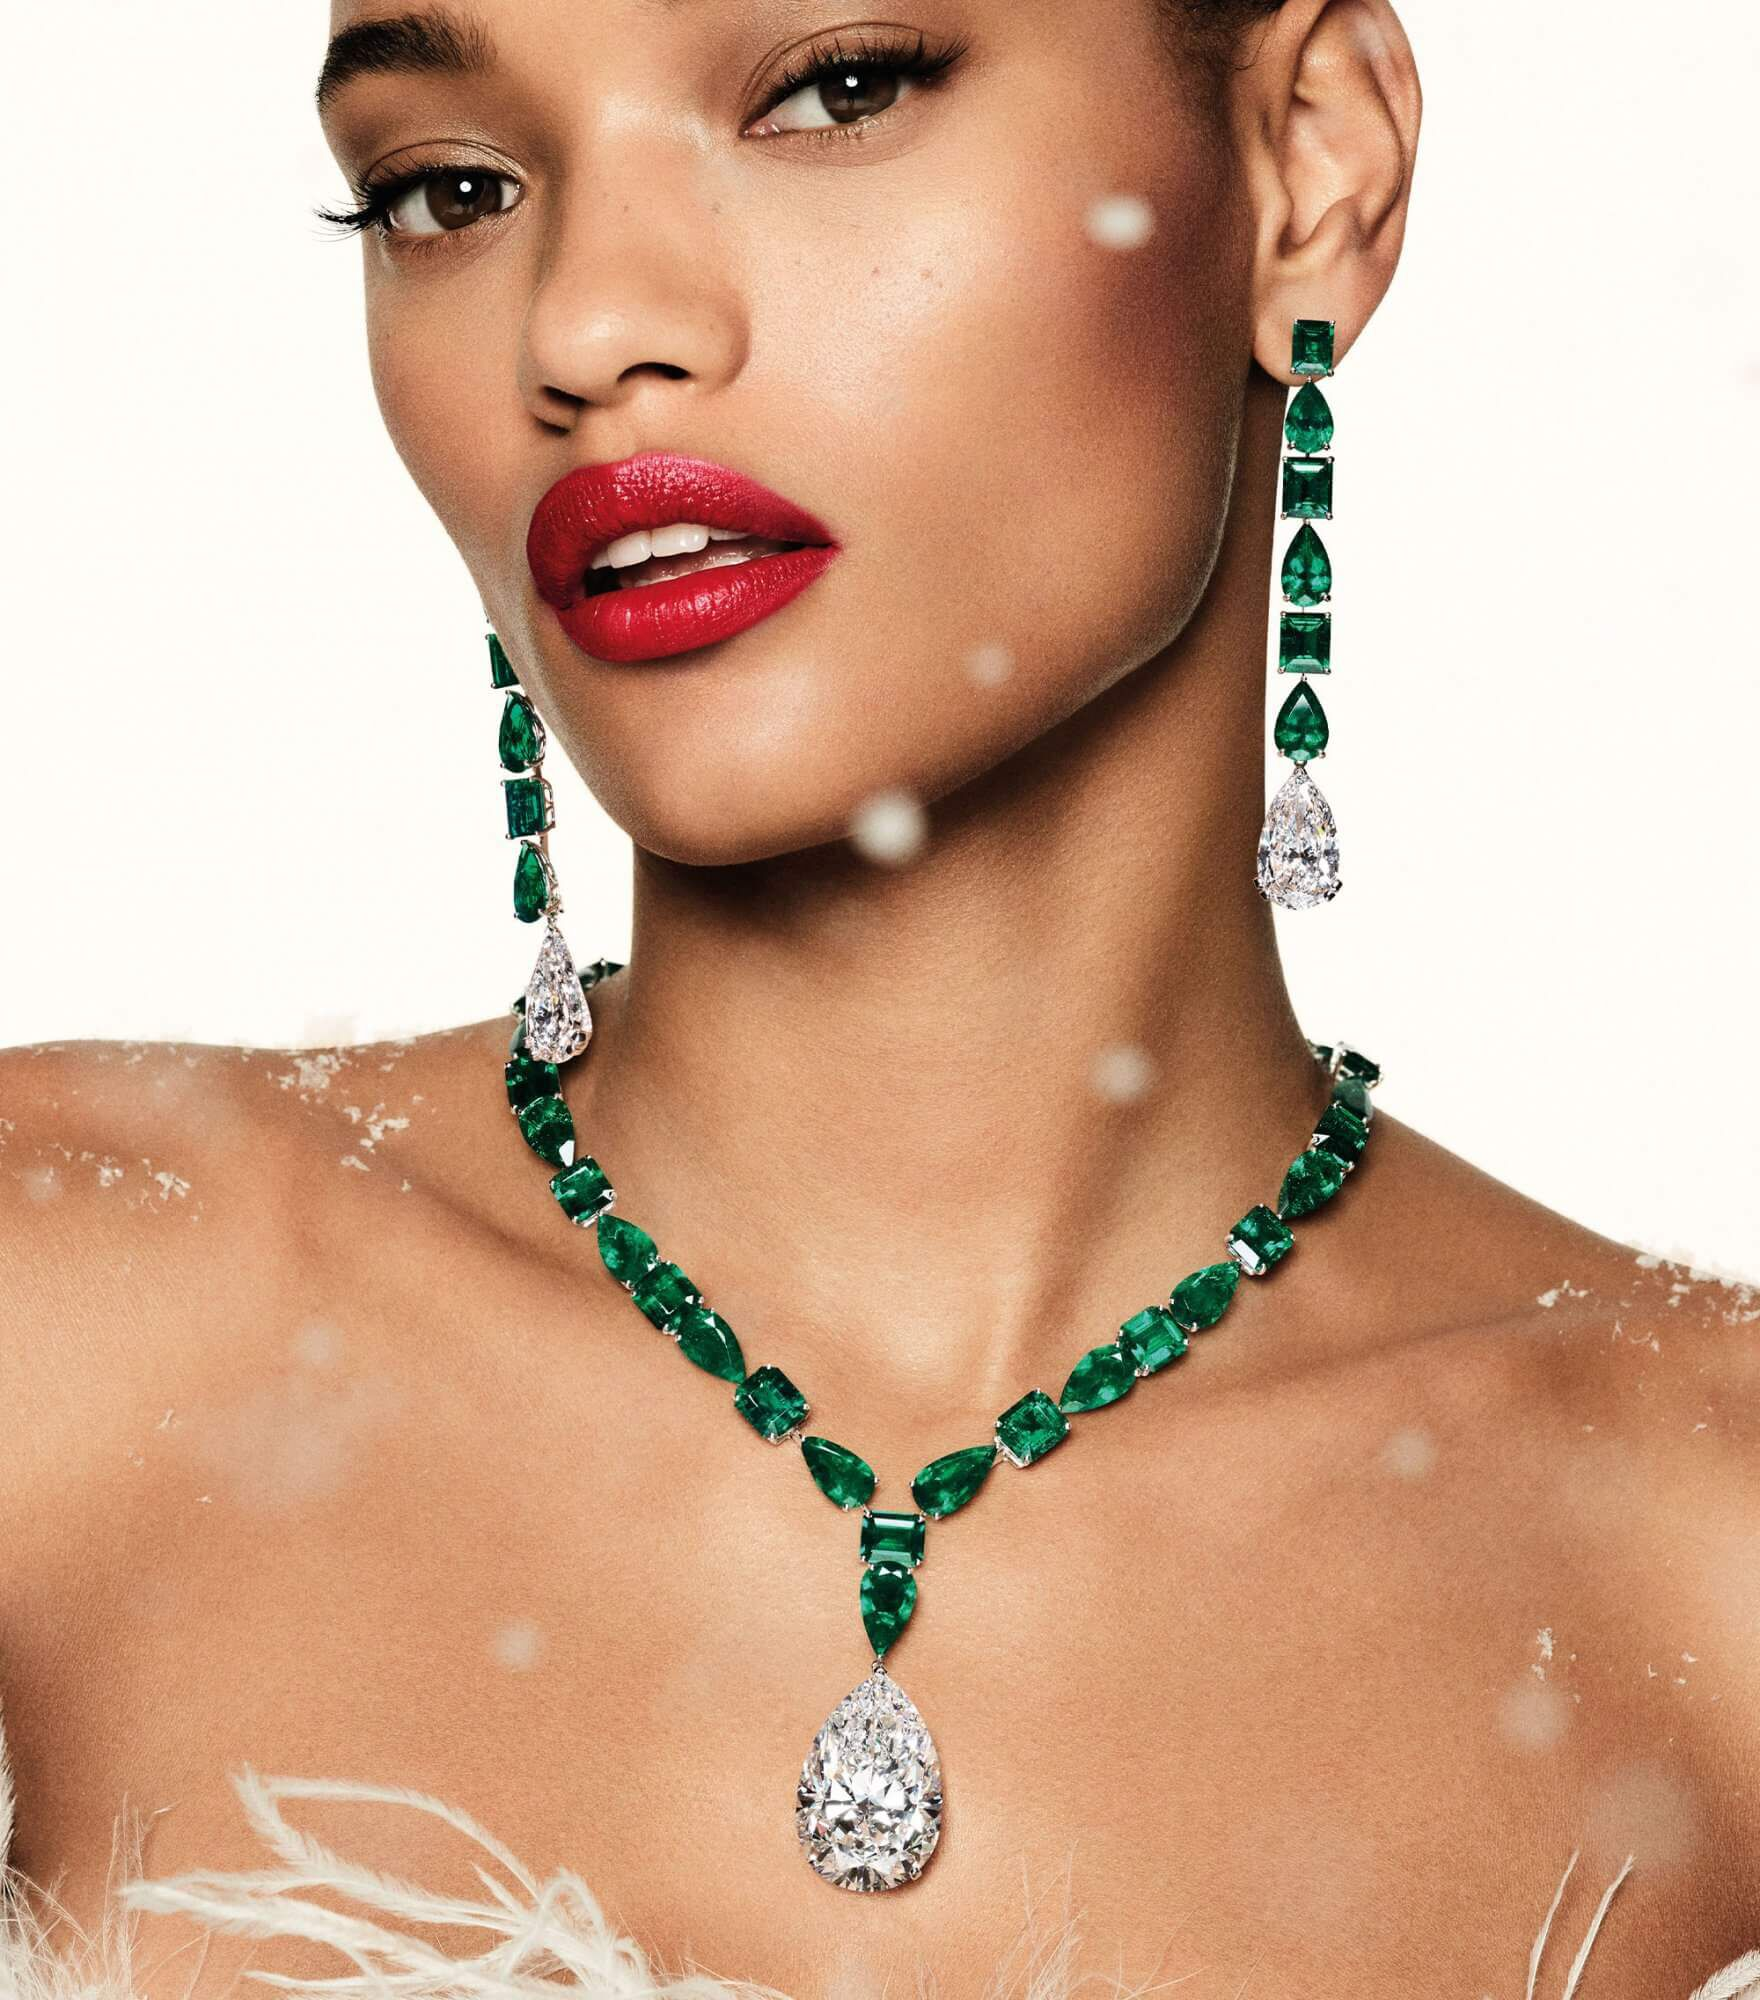 a lady wearing Graff emerald cabochon high jewellery necklace and earrings